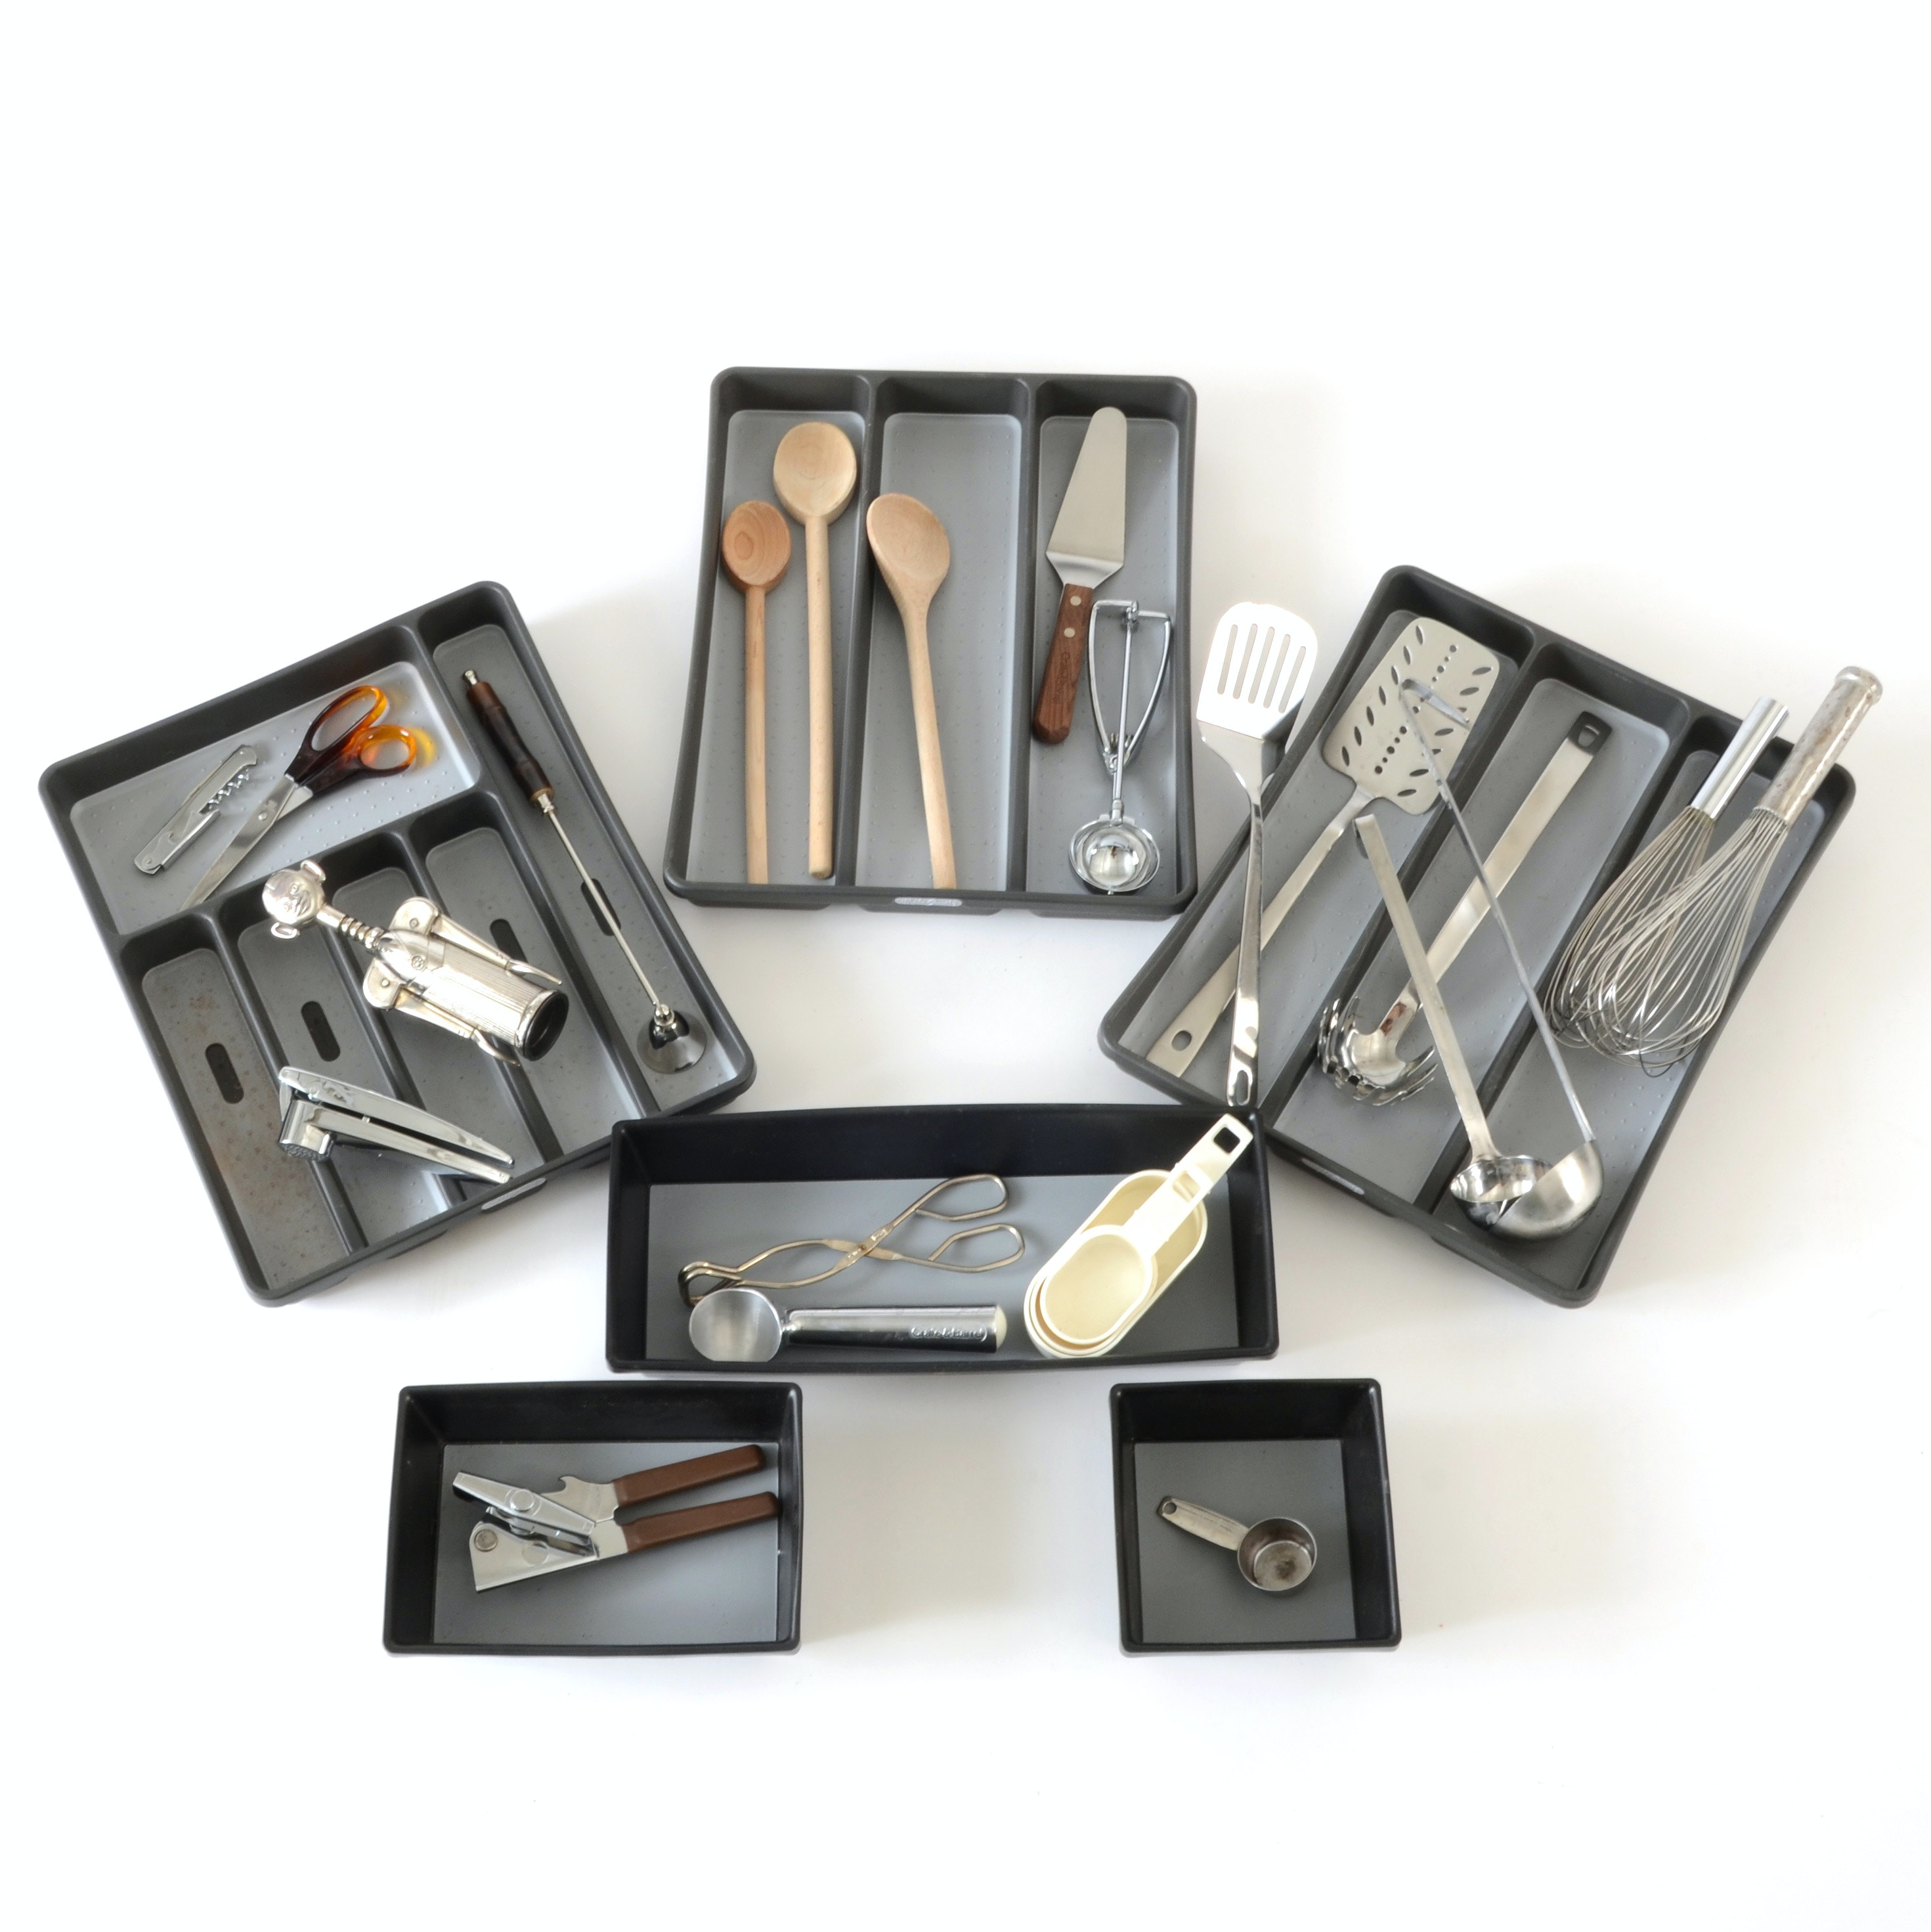 Collection of Kitchen Utensils and Drawer Organizers